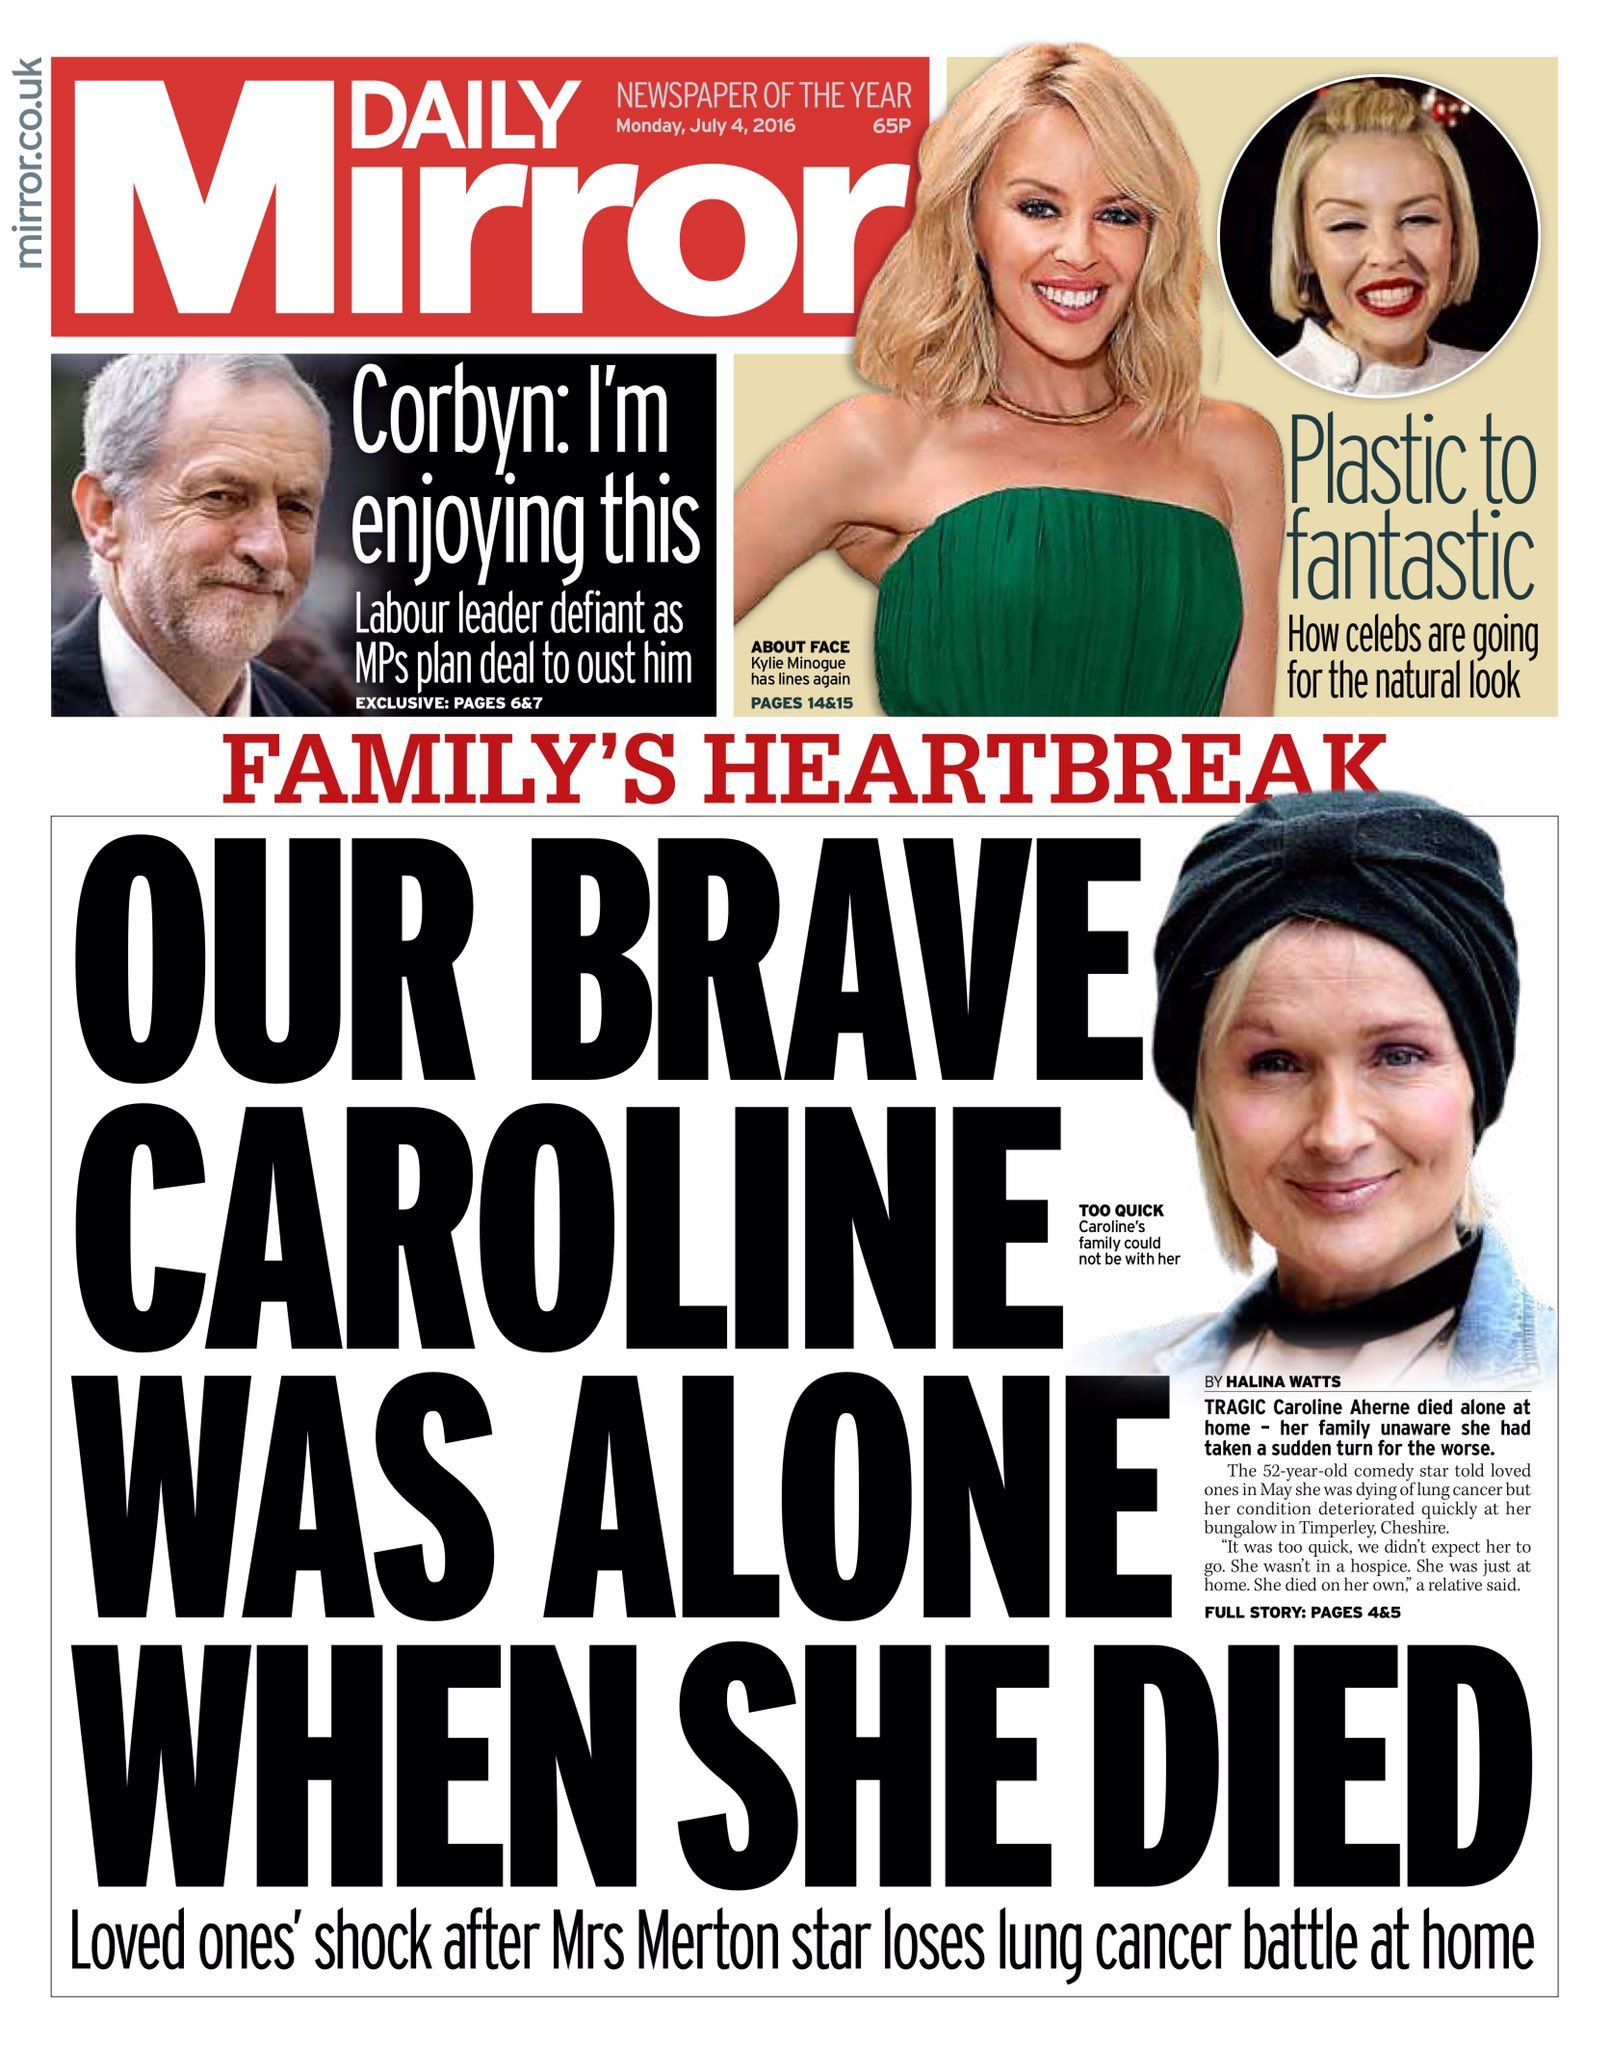 Monday's Daily Mirror front page: Our brave Caroline was alone when she died #tomorrowspaperstoday #bbcpapers https://t.co/HzkYPMUyoy